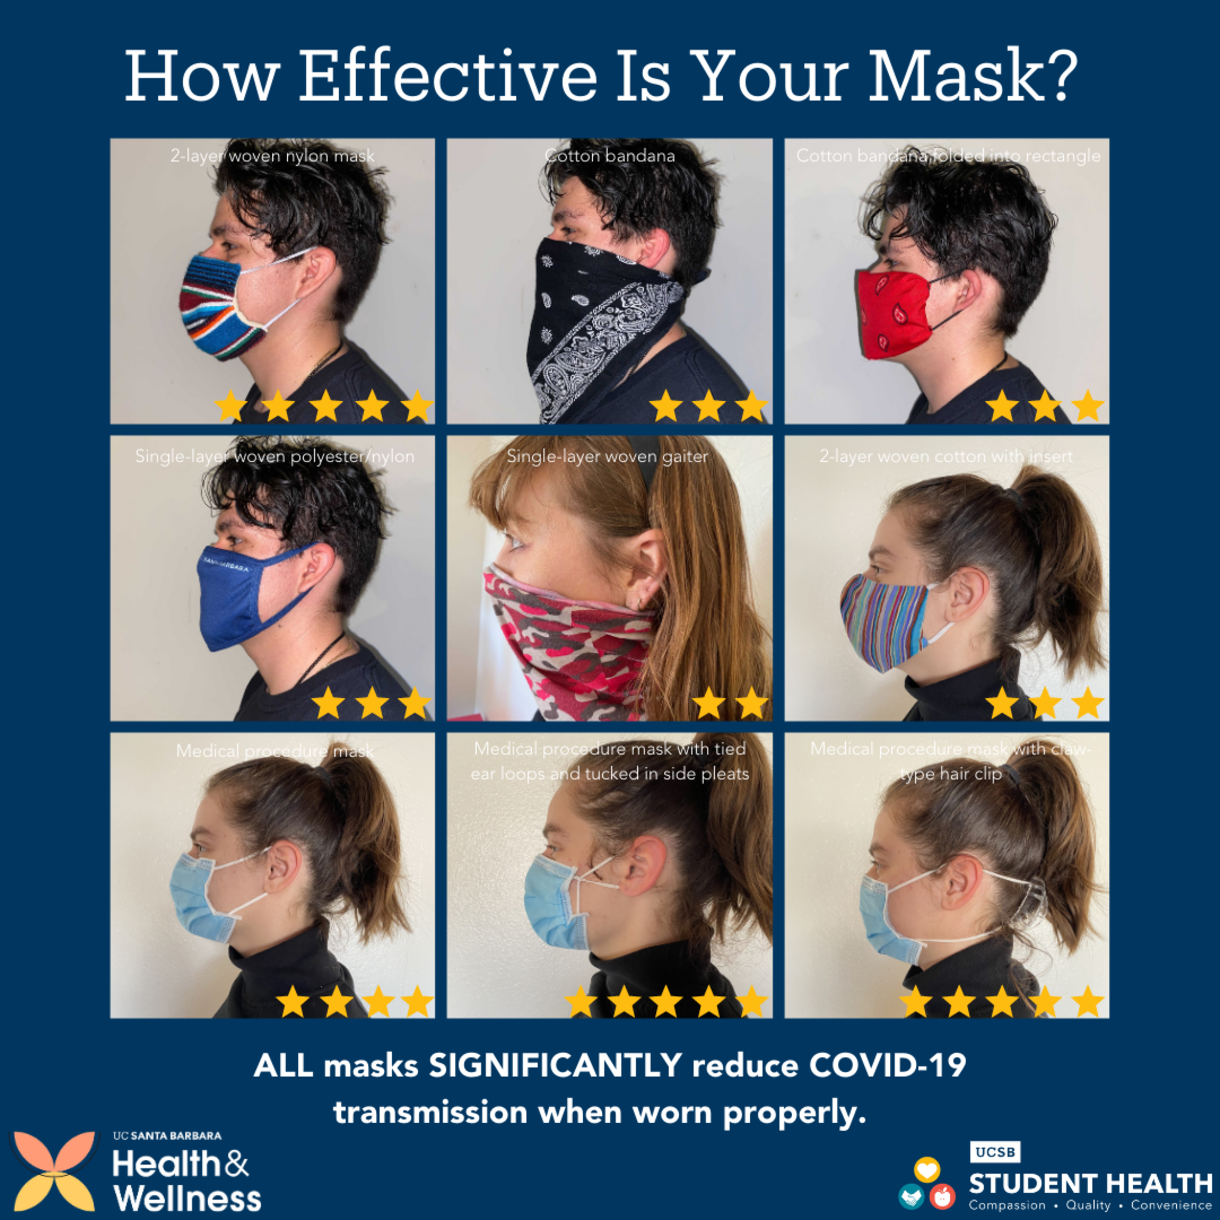 All masks significantly reduce COVID-19 transmission when worn properly. A study found that simple modifications such as looping your ear ties, adding a metal nose pin, and/or adding some type of modification for a tighter fit increased the efficiency. The graphic shows nine mask styles. The least effective (two stars) is a single-layer woven gaiter. Average effectiveness (three stars) styles include cotton bandanas and single-layer woven polyester/nylon and 2-layer woven cotton with insert. Better masks (four stars) include medical procedure masks. And the best masks (5 stars) include medical procedure masks with tied ear loops and tucked in side pleats, medical procedure masks with a claws type hair clip to pull slack of the ear loops behind the neck, and 2-layer woven nylon masks.